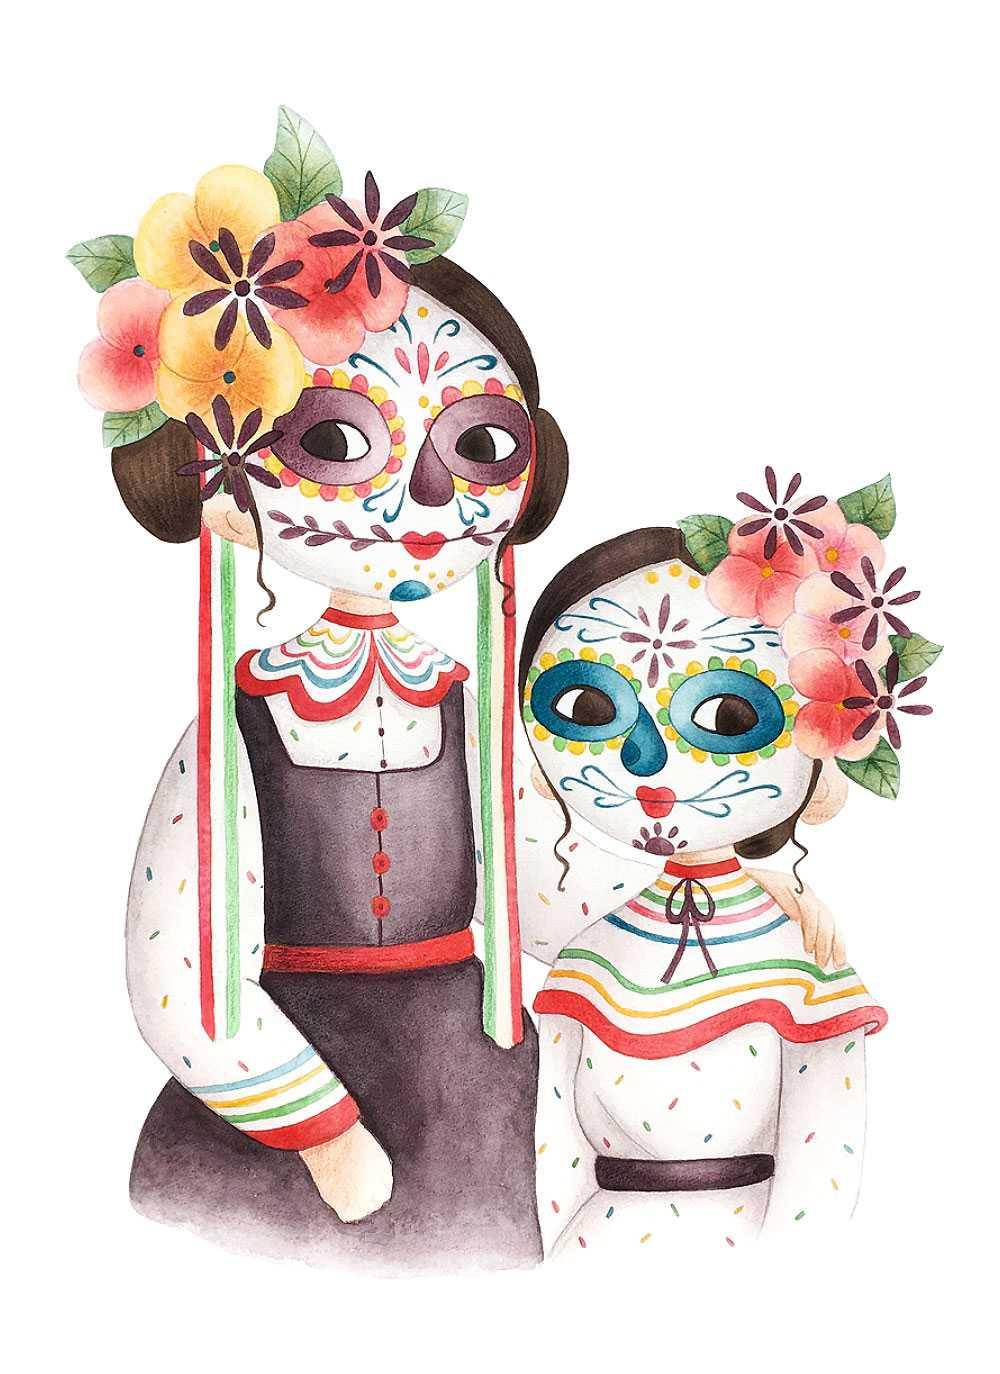 Two little girls with Dia de los muertos makeup and traditional costumes.